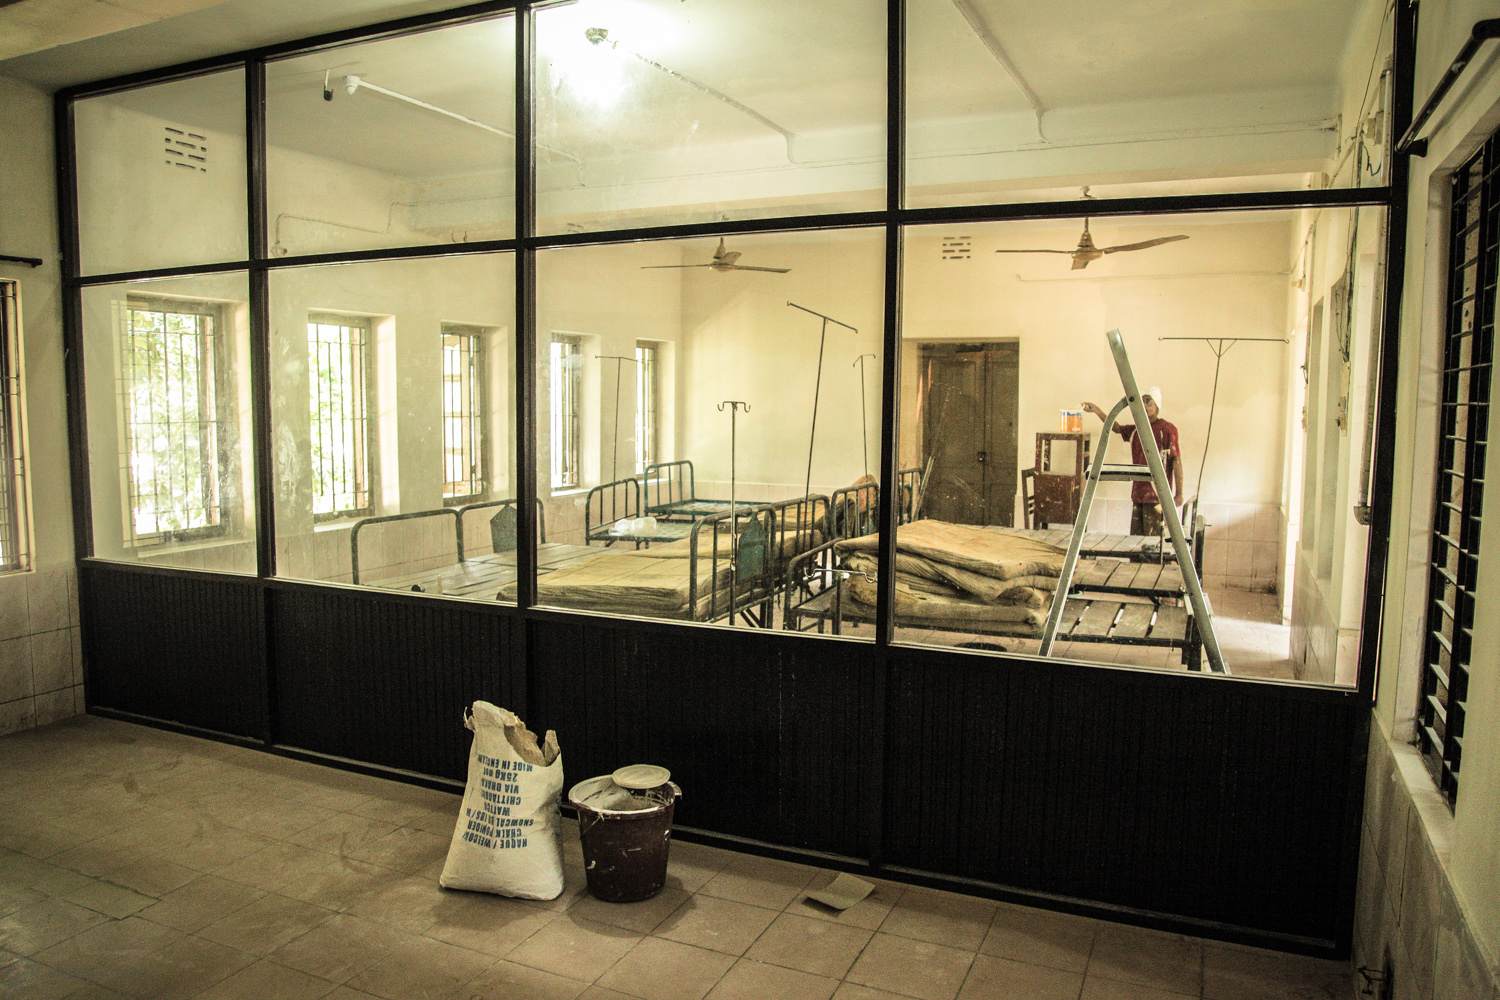 A new maternity ward is opening soon, as the hospital expands